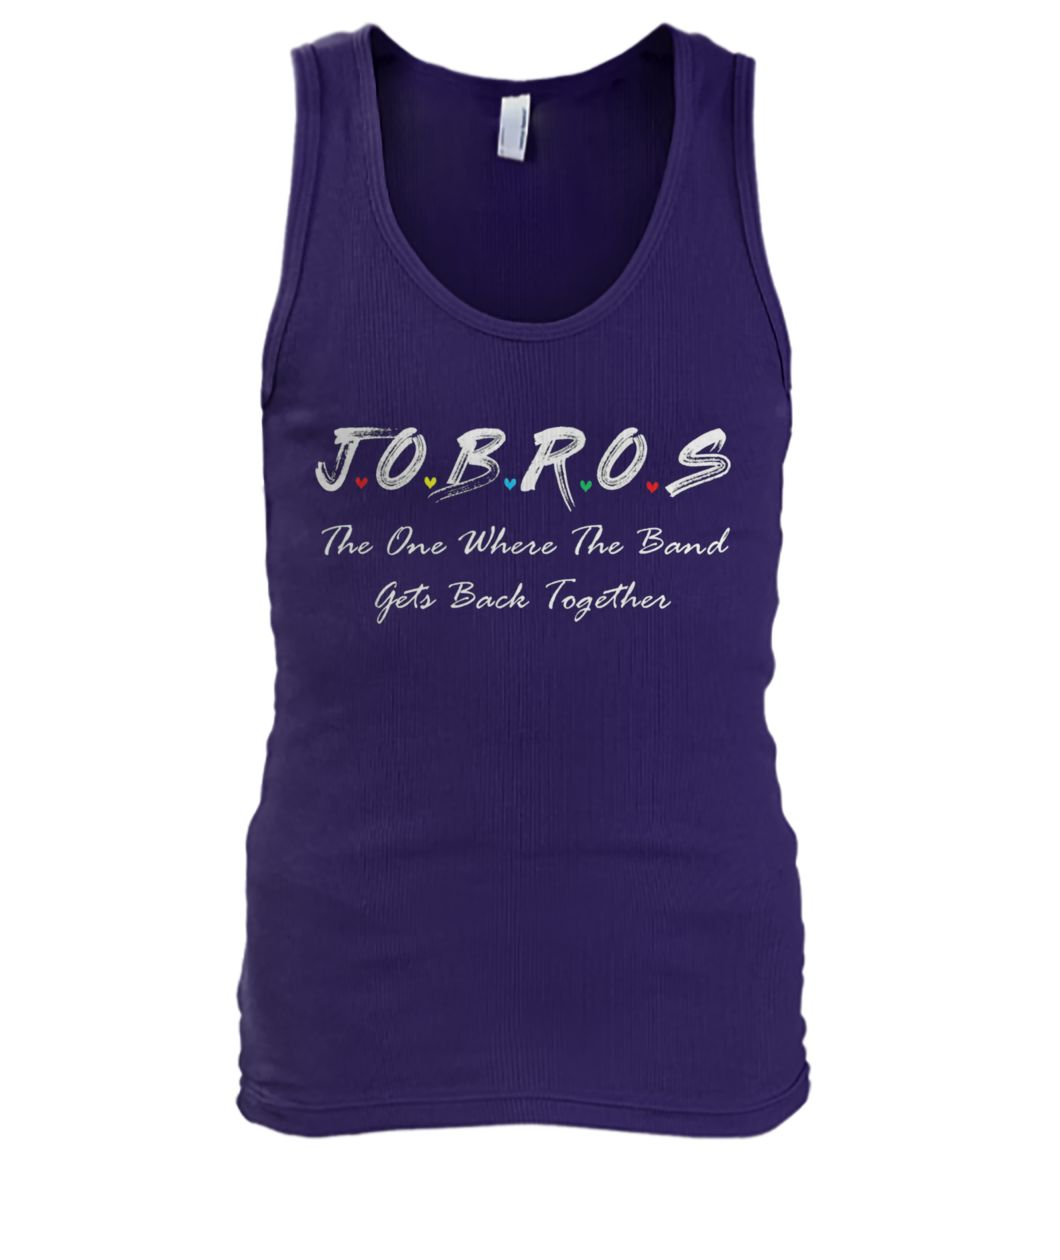 Jobros the one where the band get back together friends tv show men's tank top